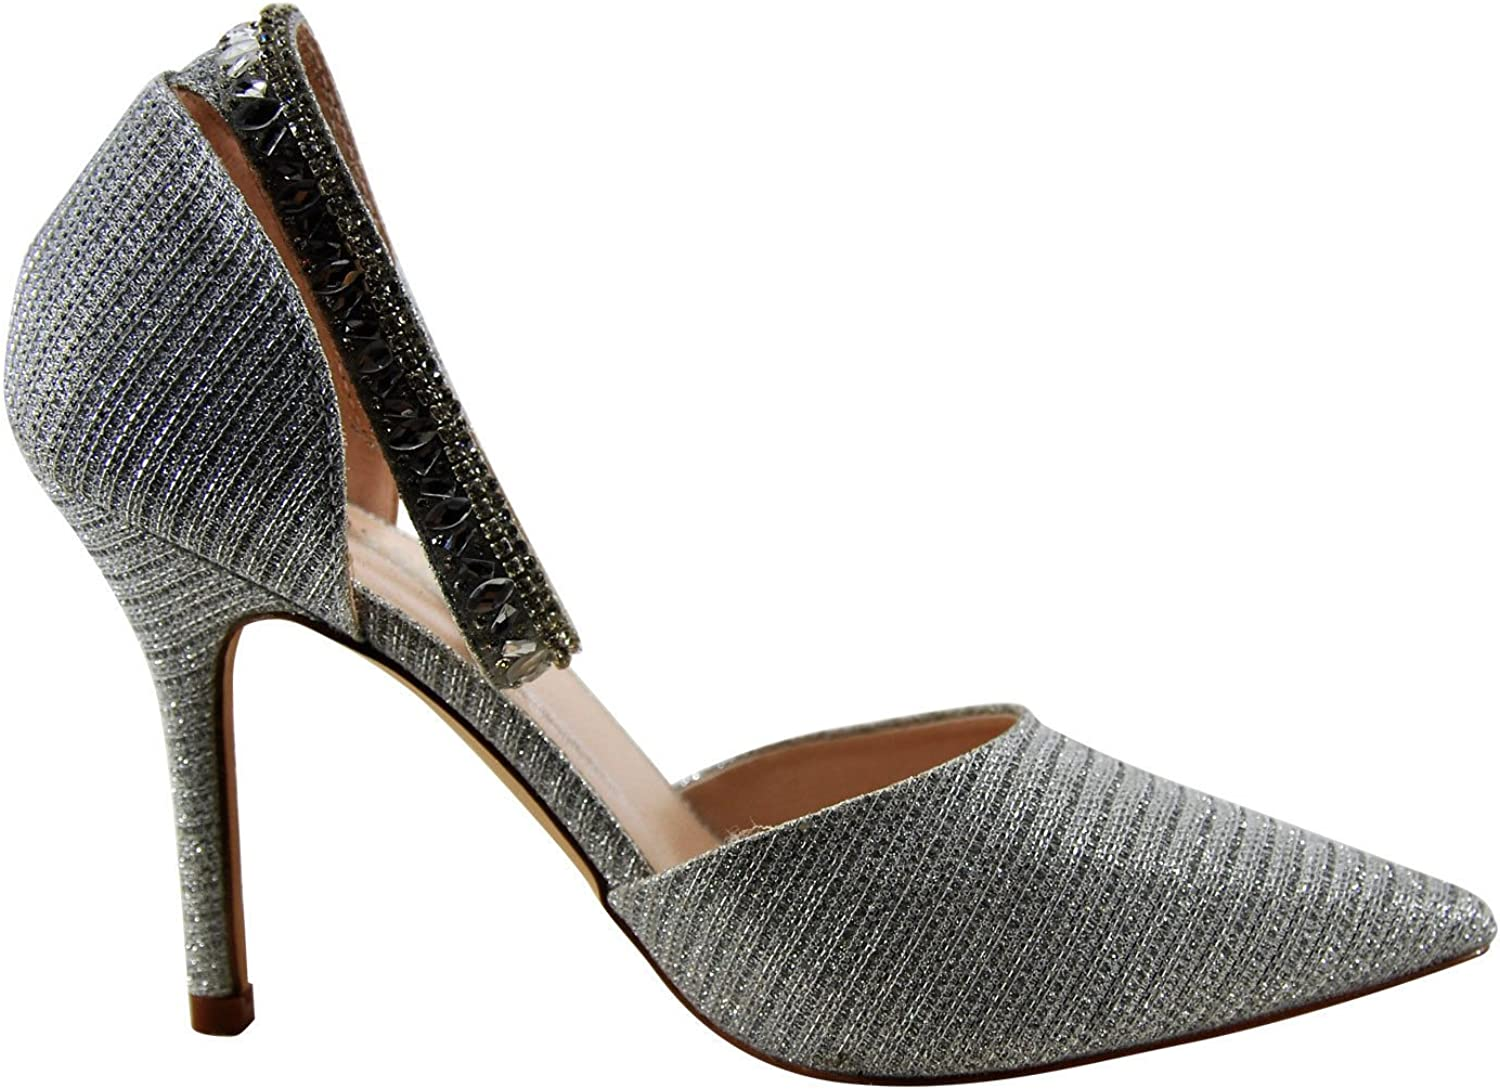 Blossom Renzo 65 Women's Pointed Toe Ankle Strap Heel